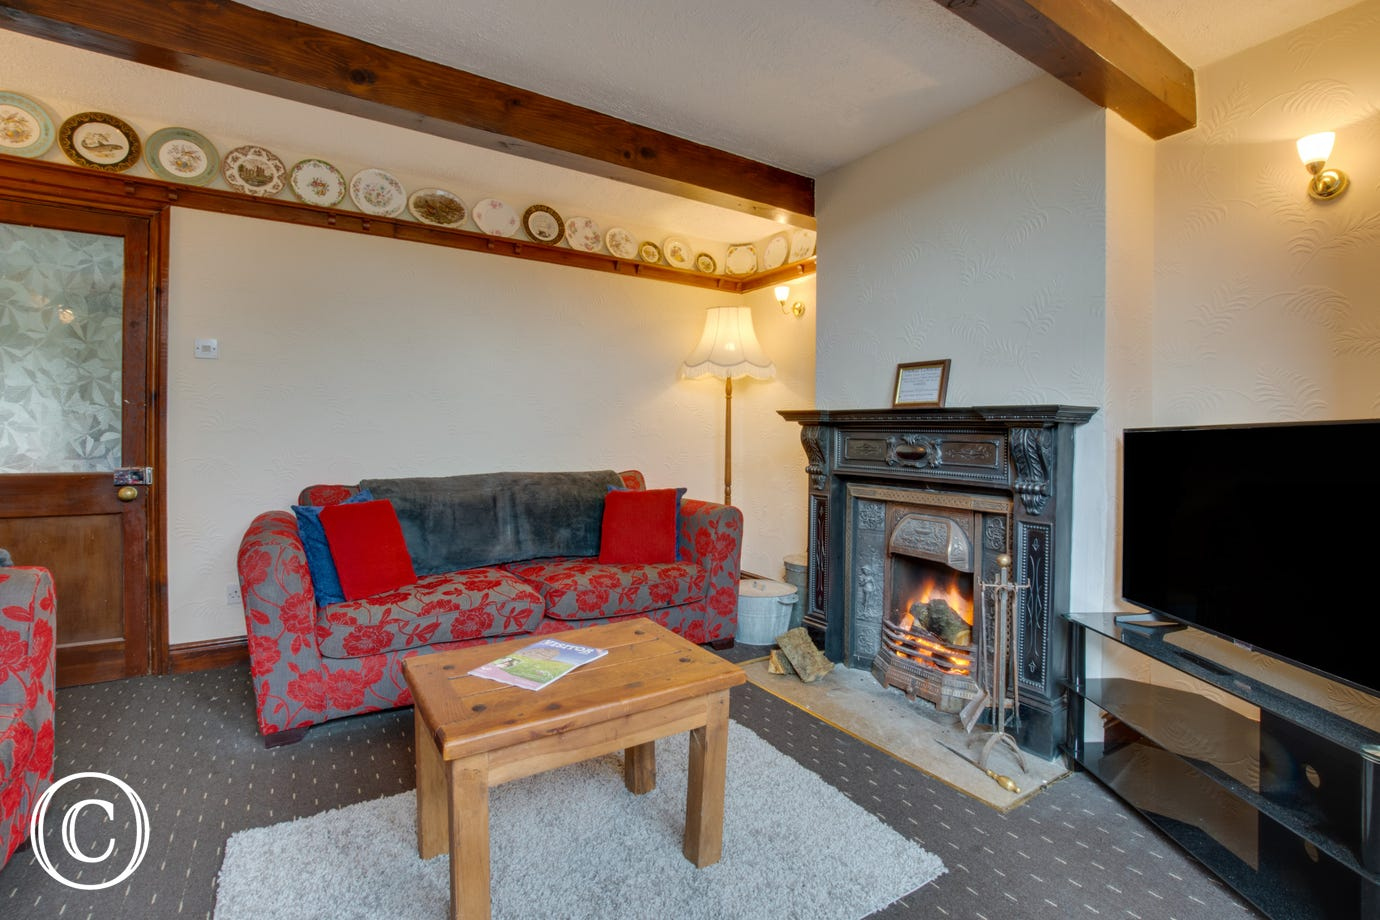 Spacious lounge with an open fire, nice and cosy